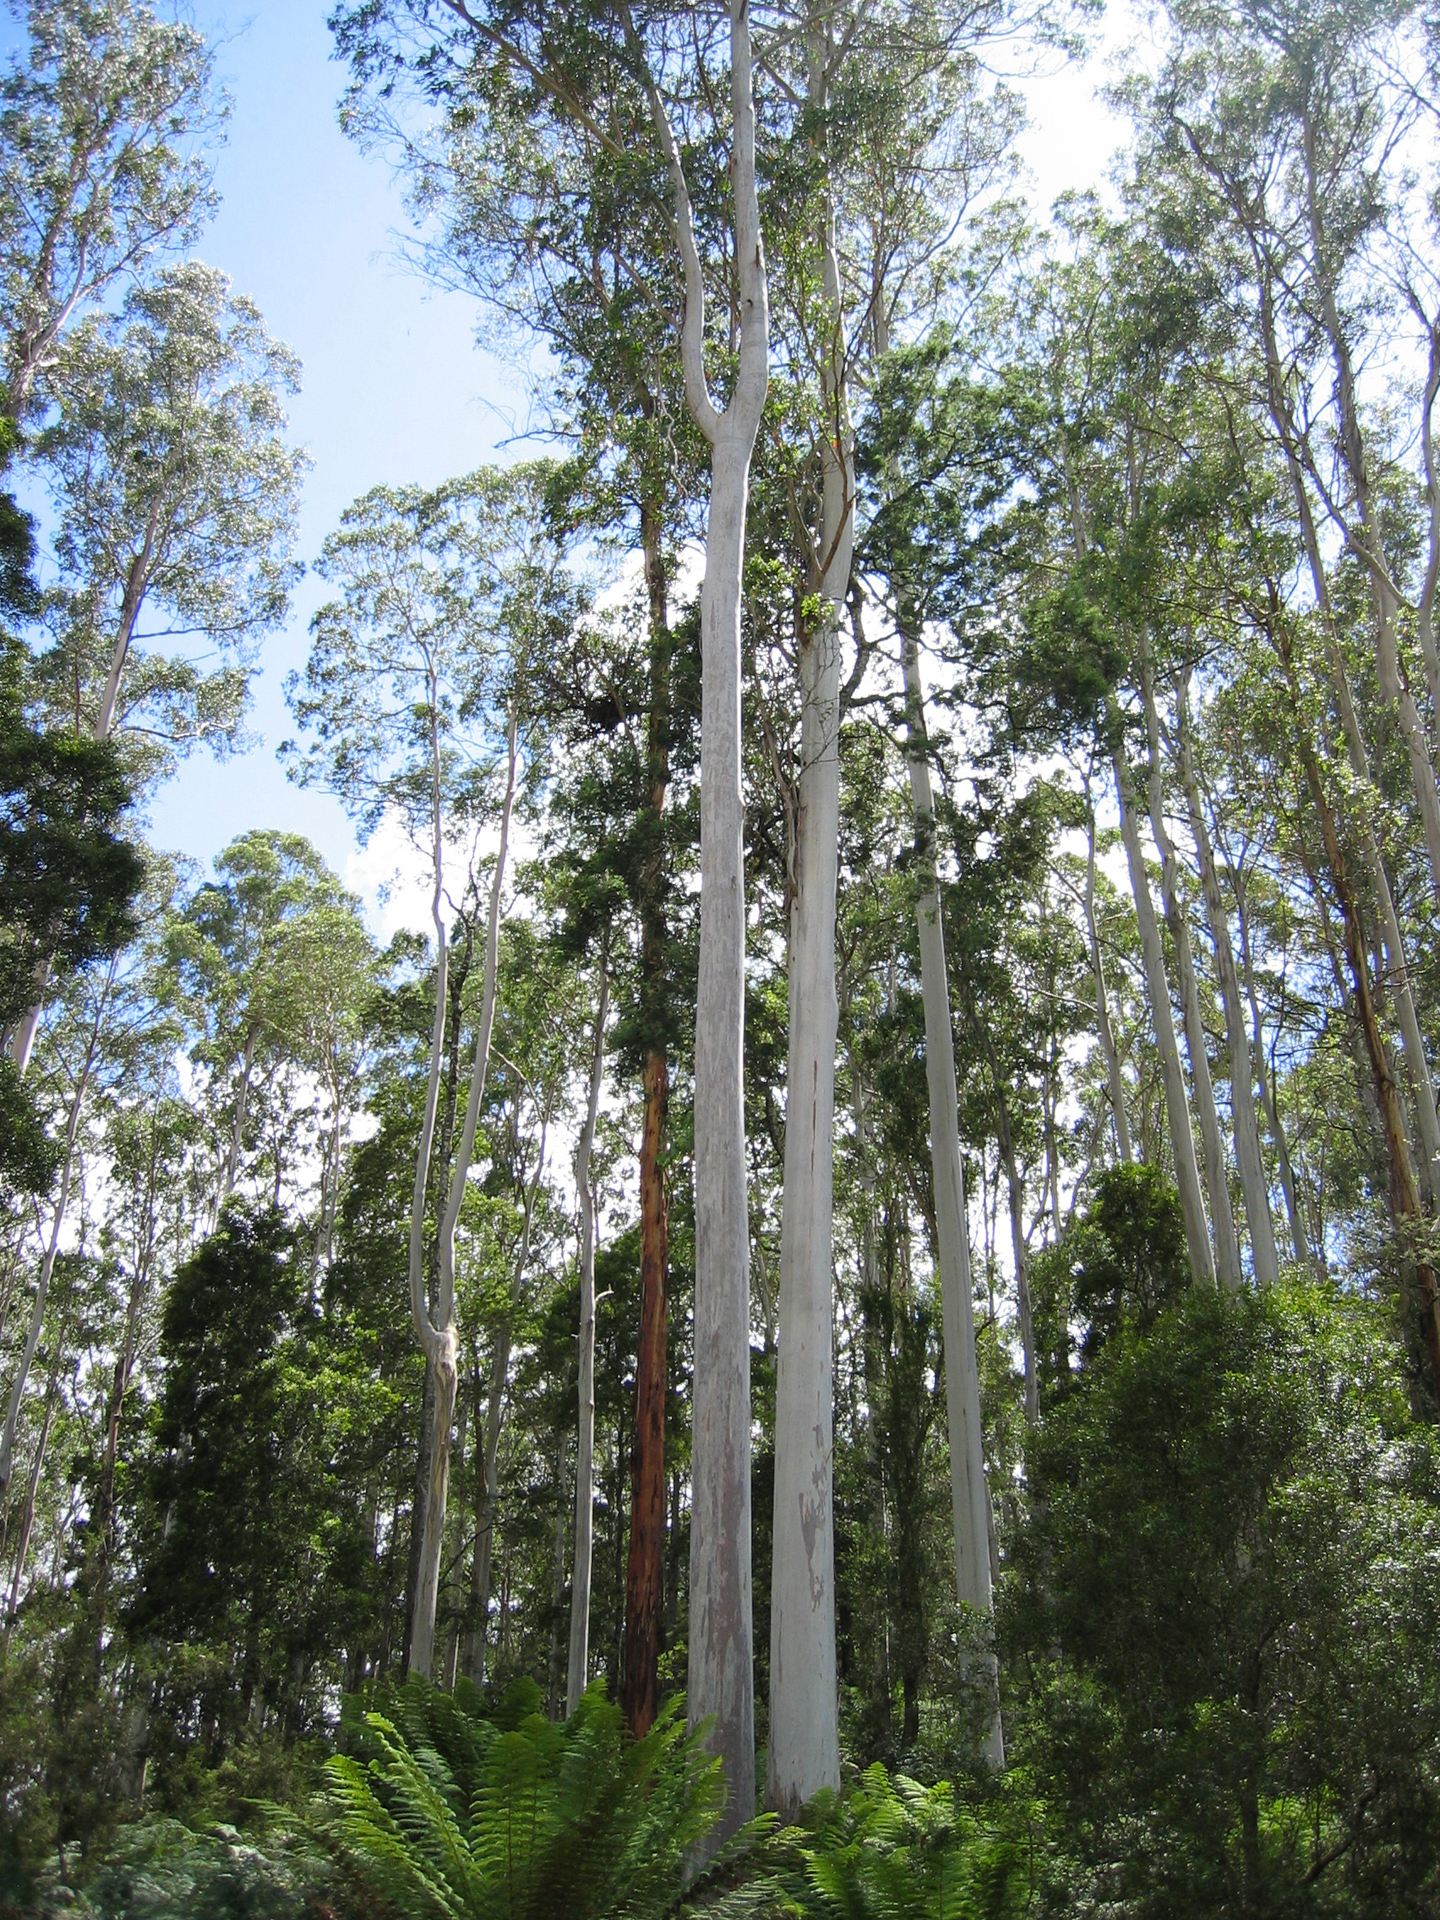 White Gum forest in The Valley - Photo by Trudi Bird